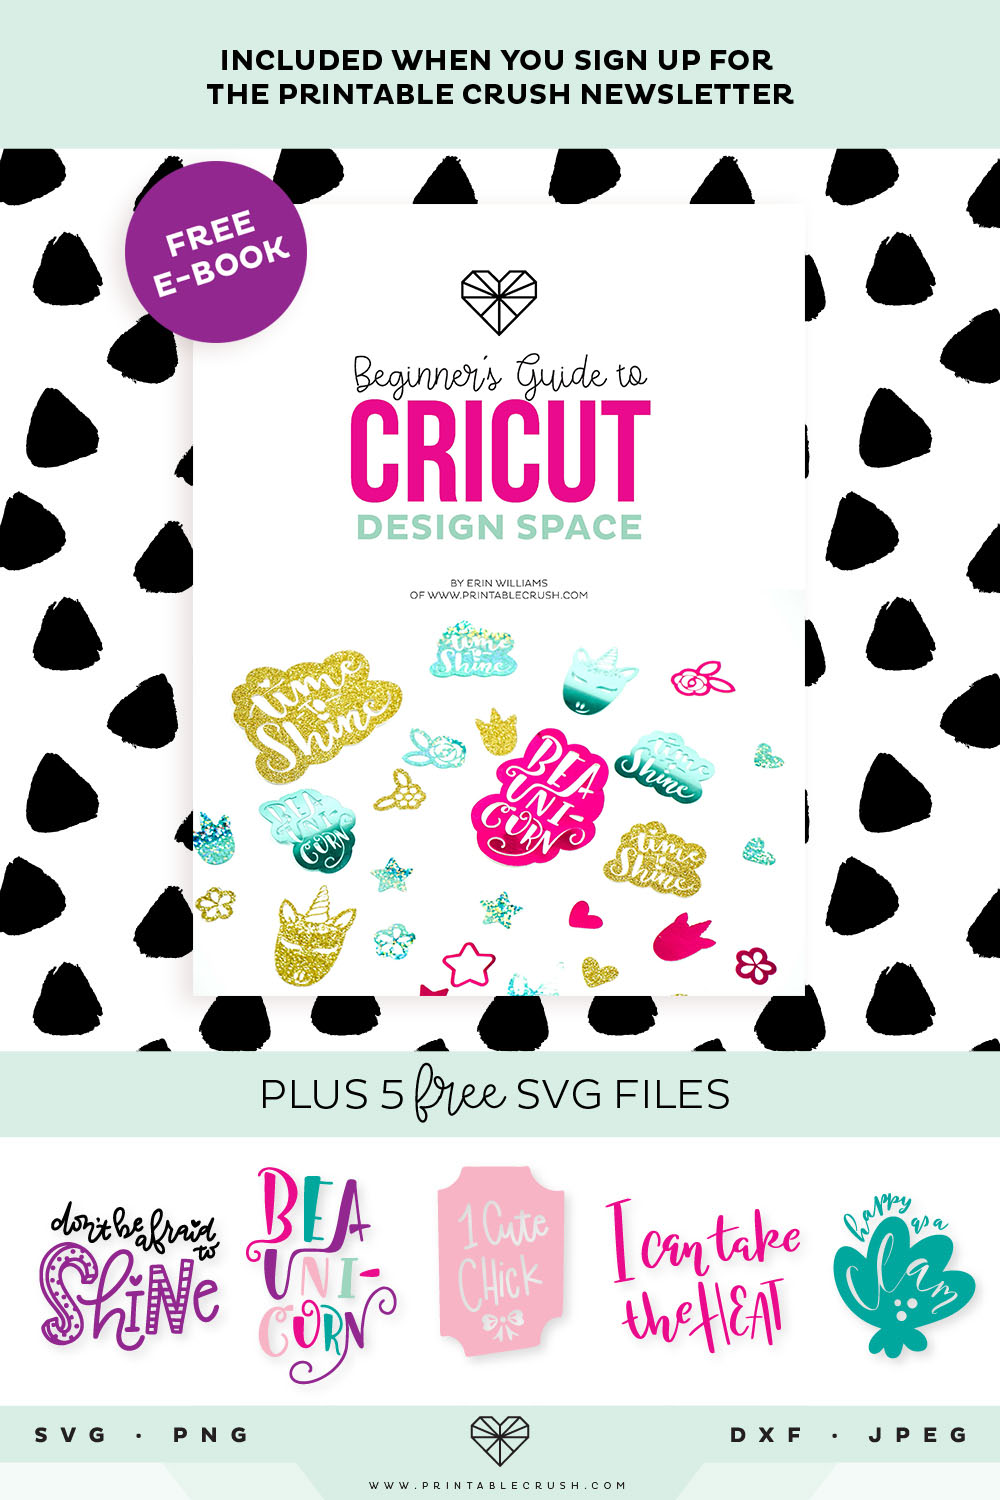 Get The Beginner's Guide to Cricut Design Space e-book and 5 FREE Hand Lettered SVG Files when you sign up for the Printable Crush Weekly Emails!!